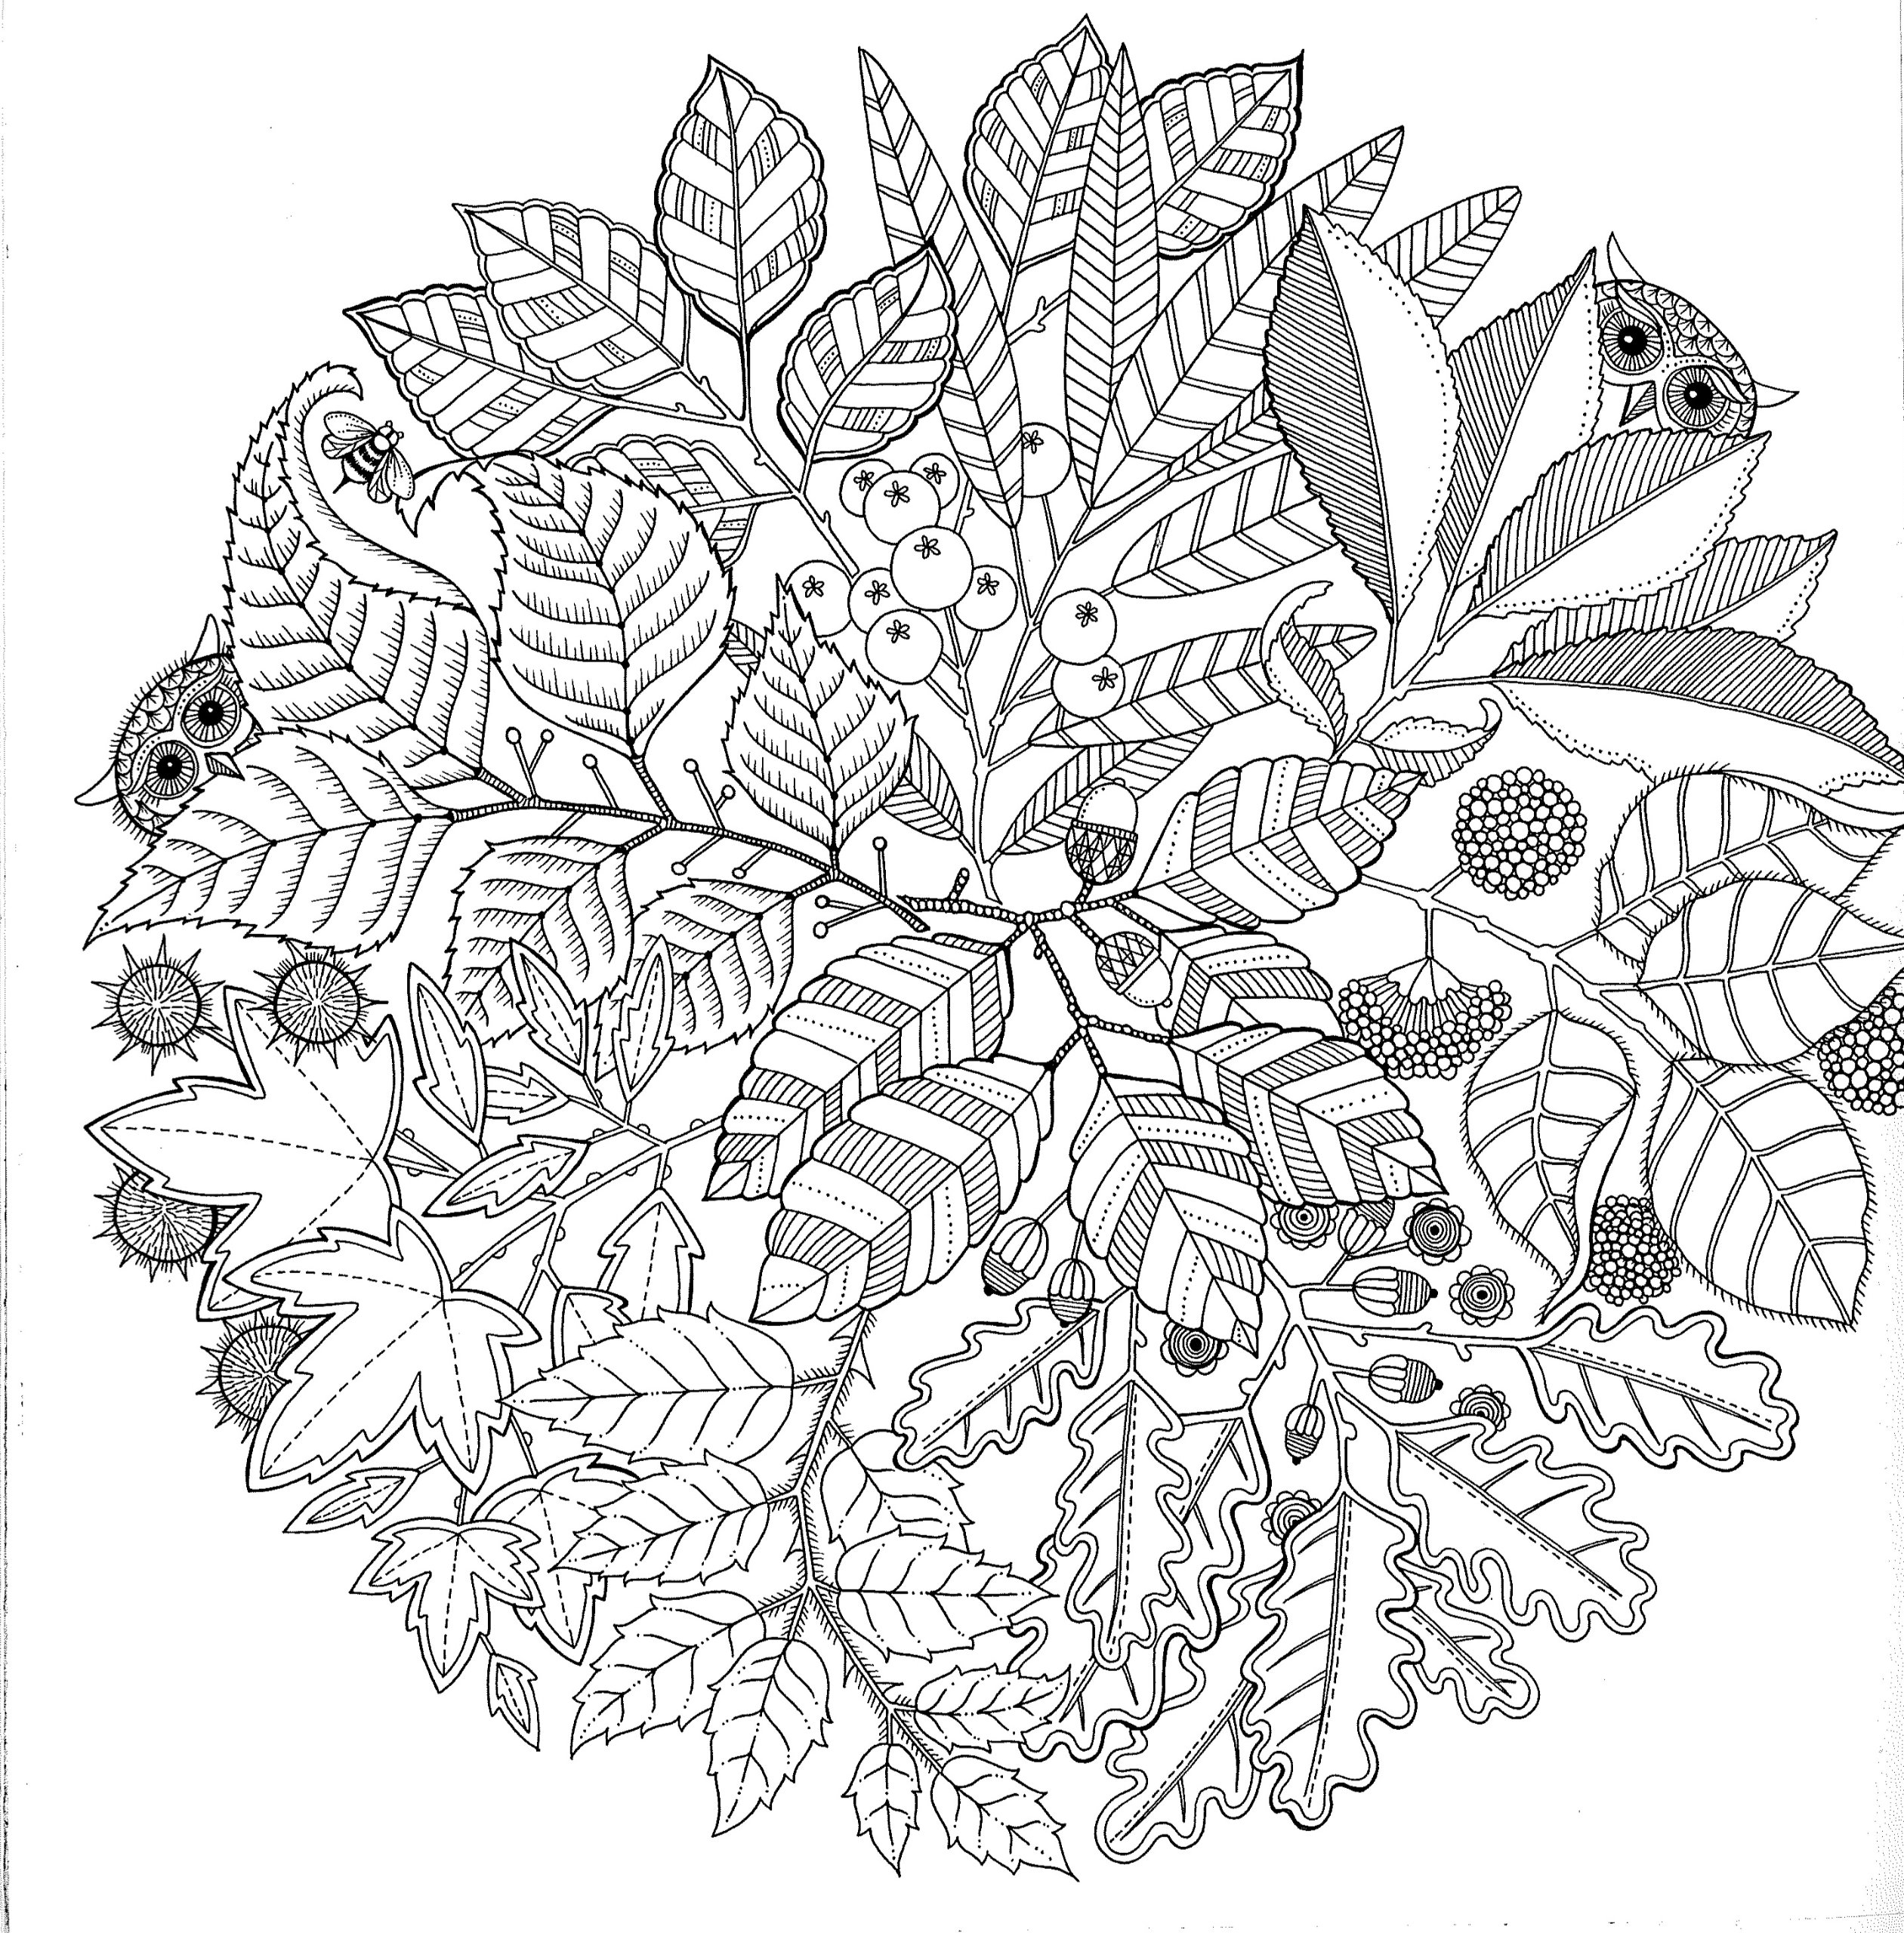 free coloring pages for adults printable get this free printable butterfly coloring pages for free adults coloring printable for pages